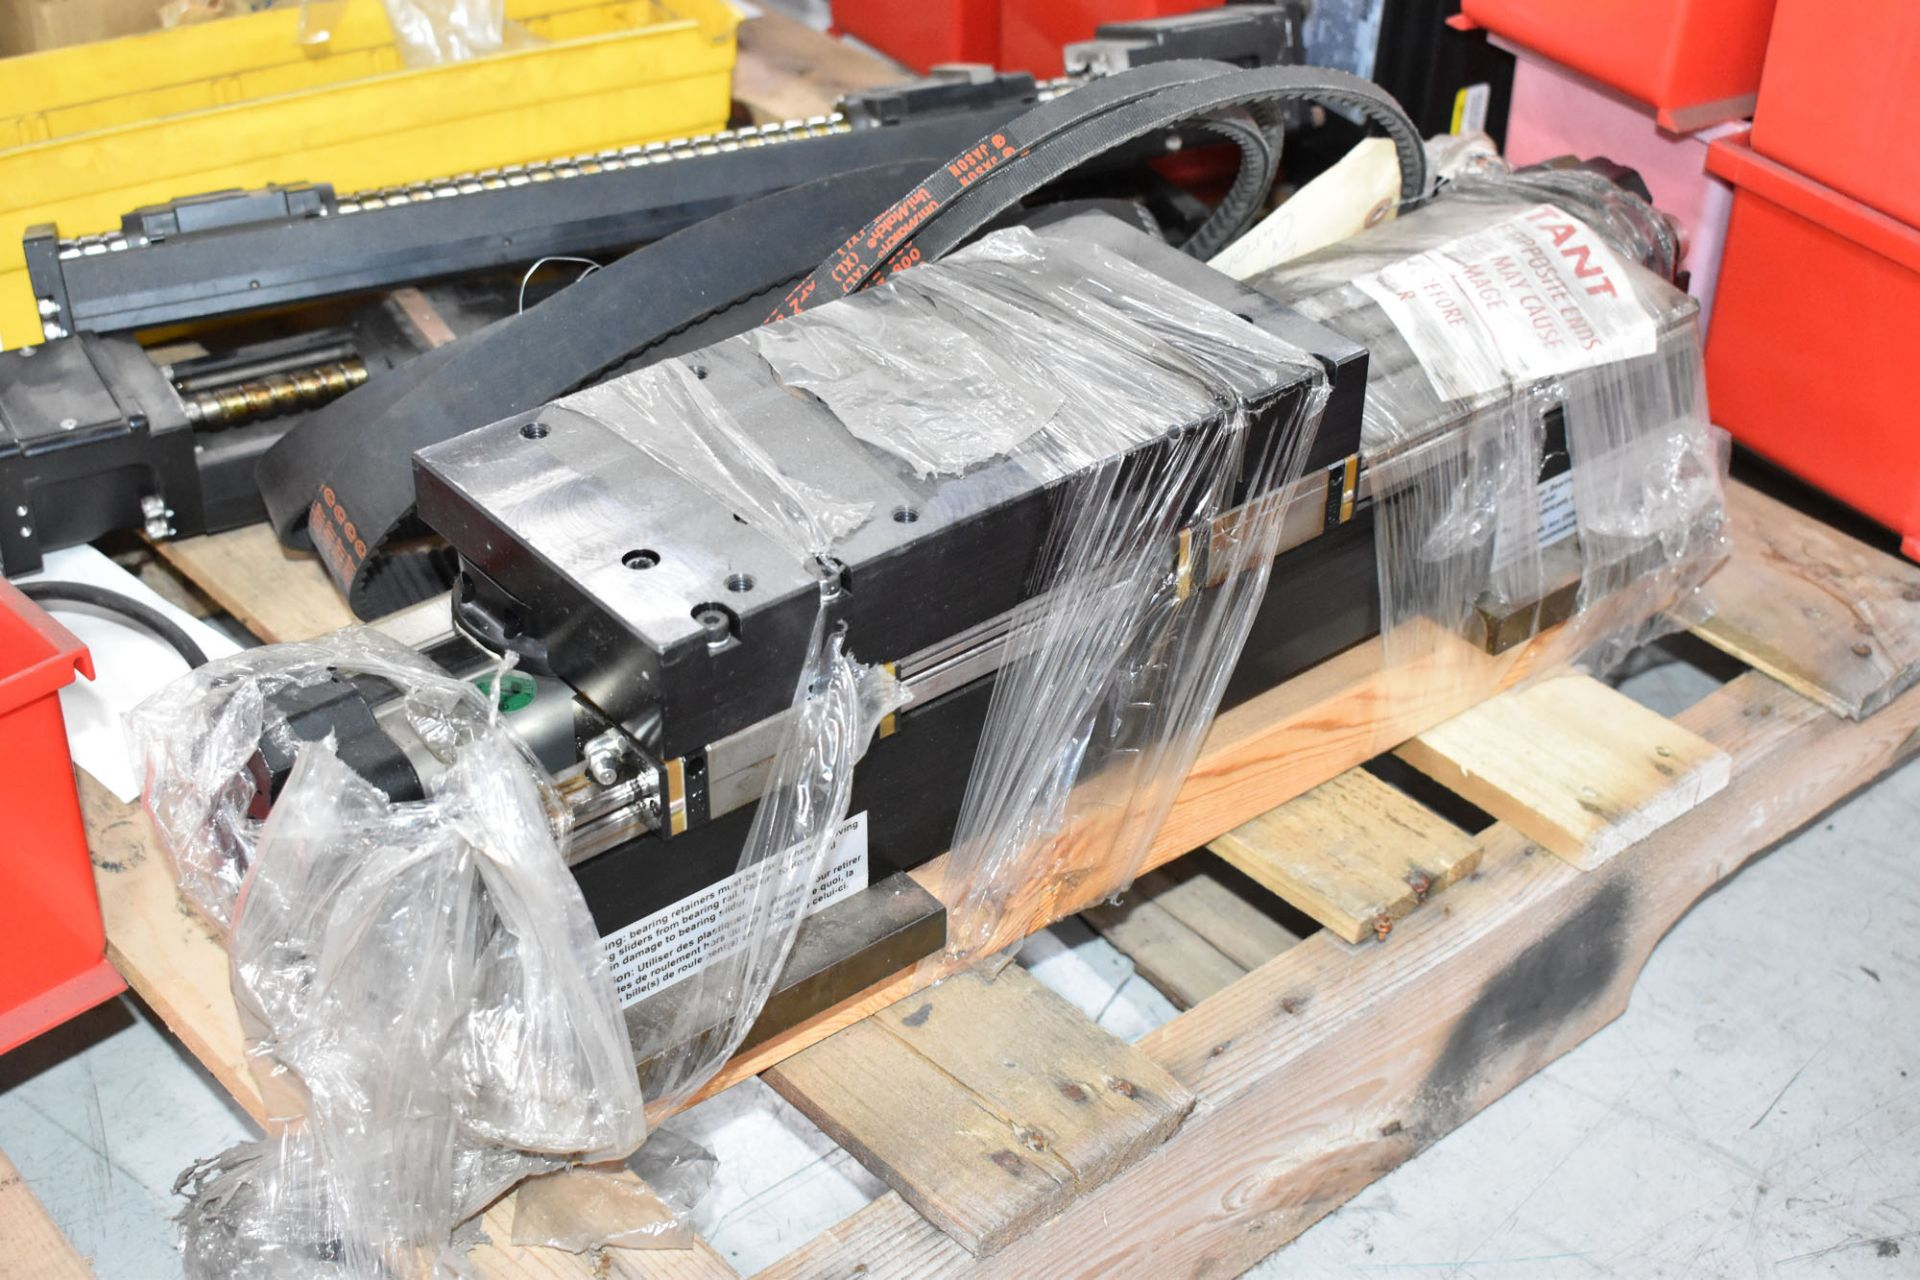 LOT/ PALLET WITH CONTENTS CONSISTING OF FITTINGS, HARDWARE, AND EXTRUDER LINE COMPONENTS [RIGGING - Image 4 of 5